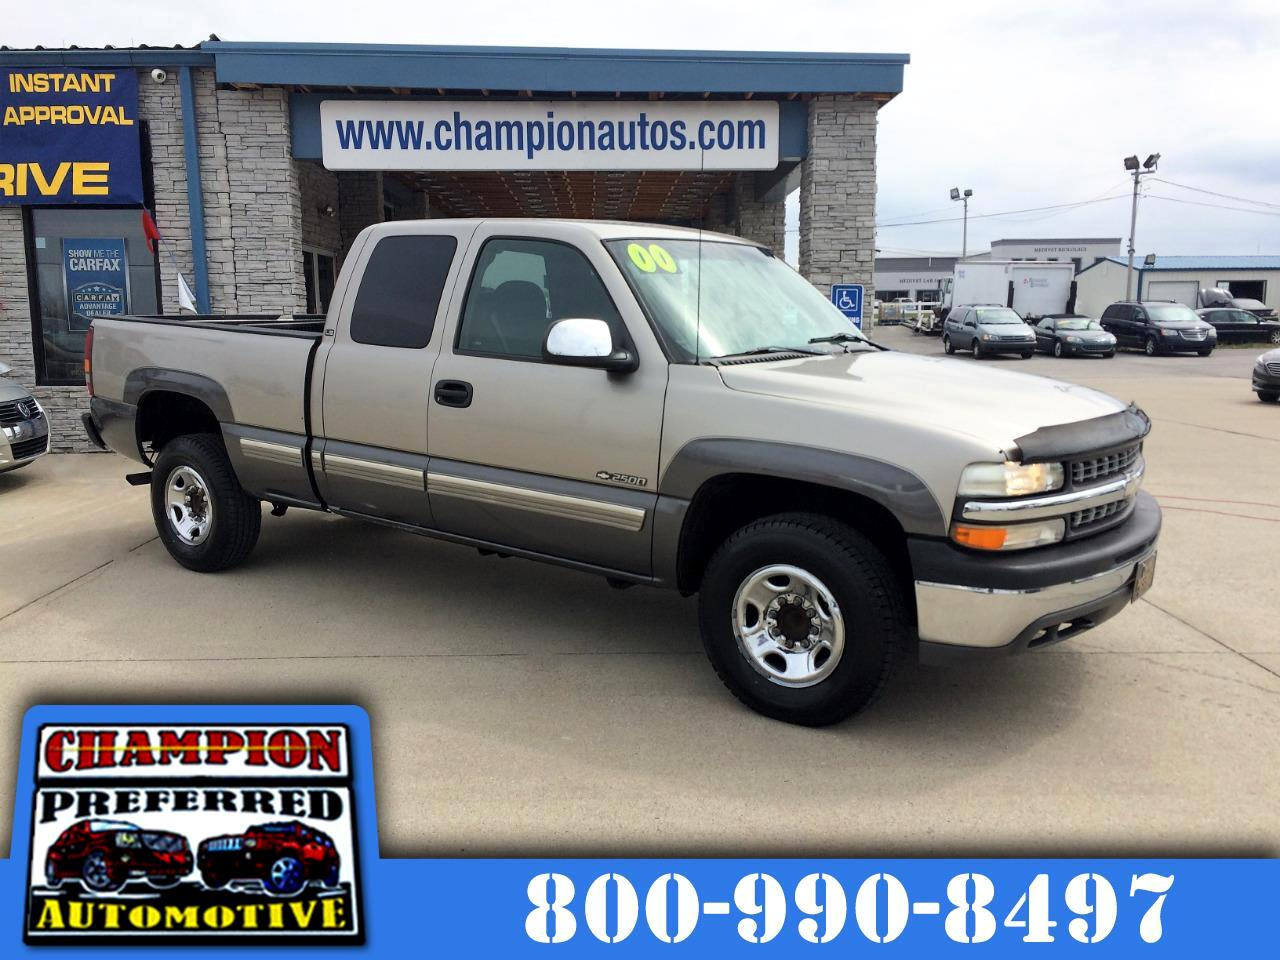 2000 GMC New Sierra 1500 3dr Ext Cab 157.5